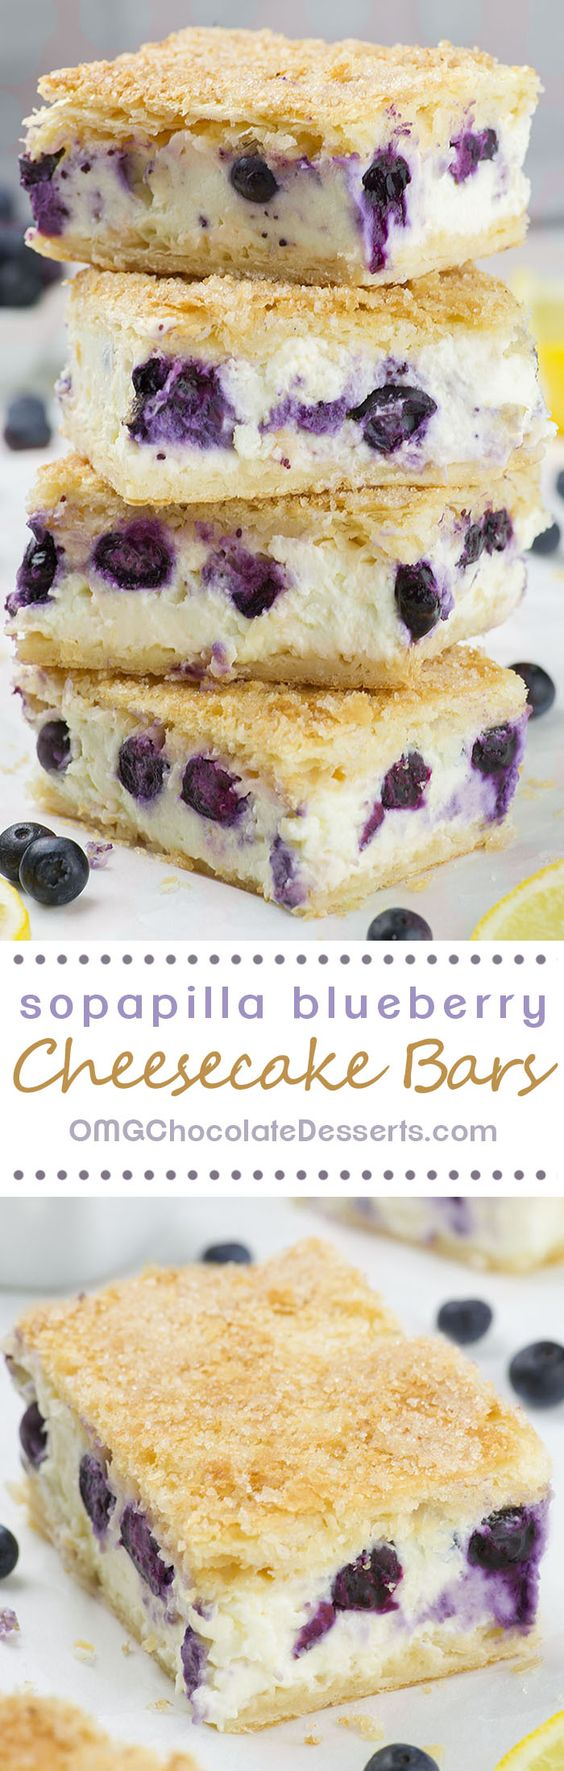 Sopapilla Blueberry Cheesecake Bars Dessert Recipe via OMG Chocolate Desserts - 5 minutes of prep time, 6 simple ingredients and the best Sopapilla Blueberry Cheesecake Bars you've ever tasted is ready!